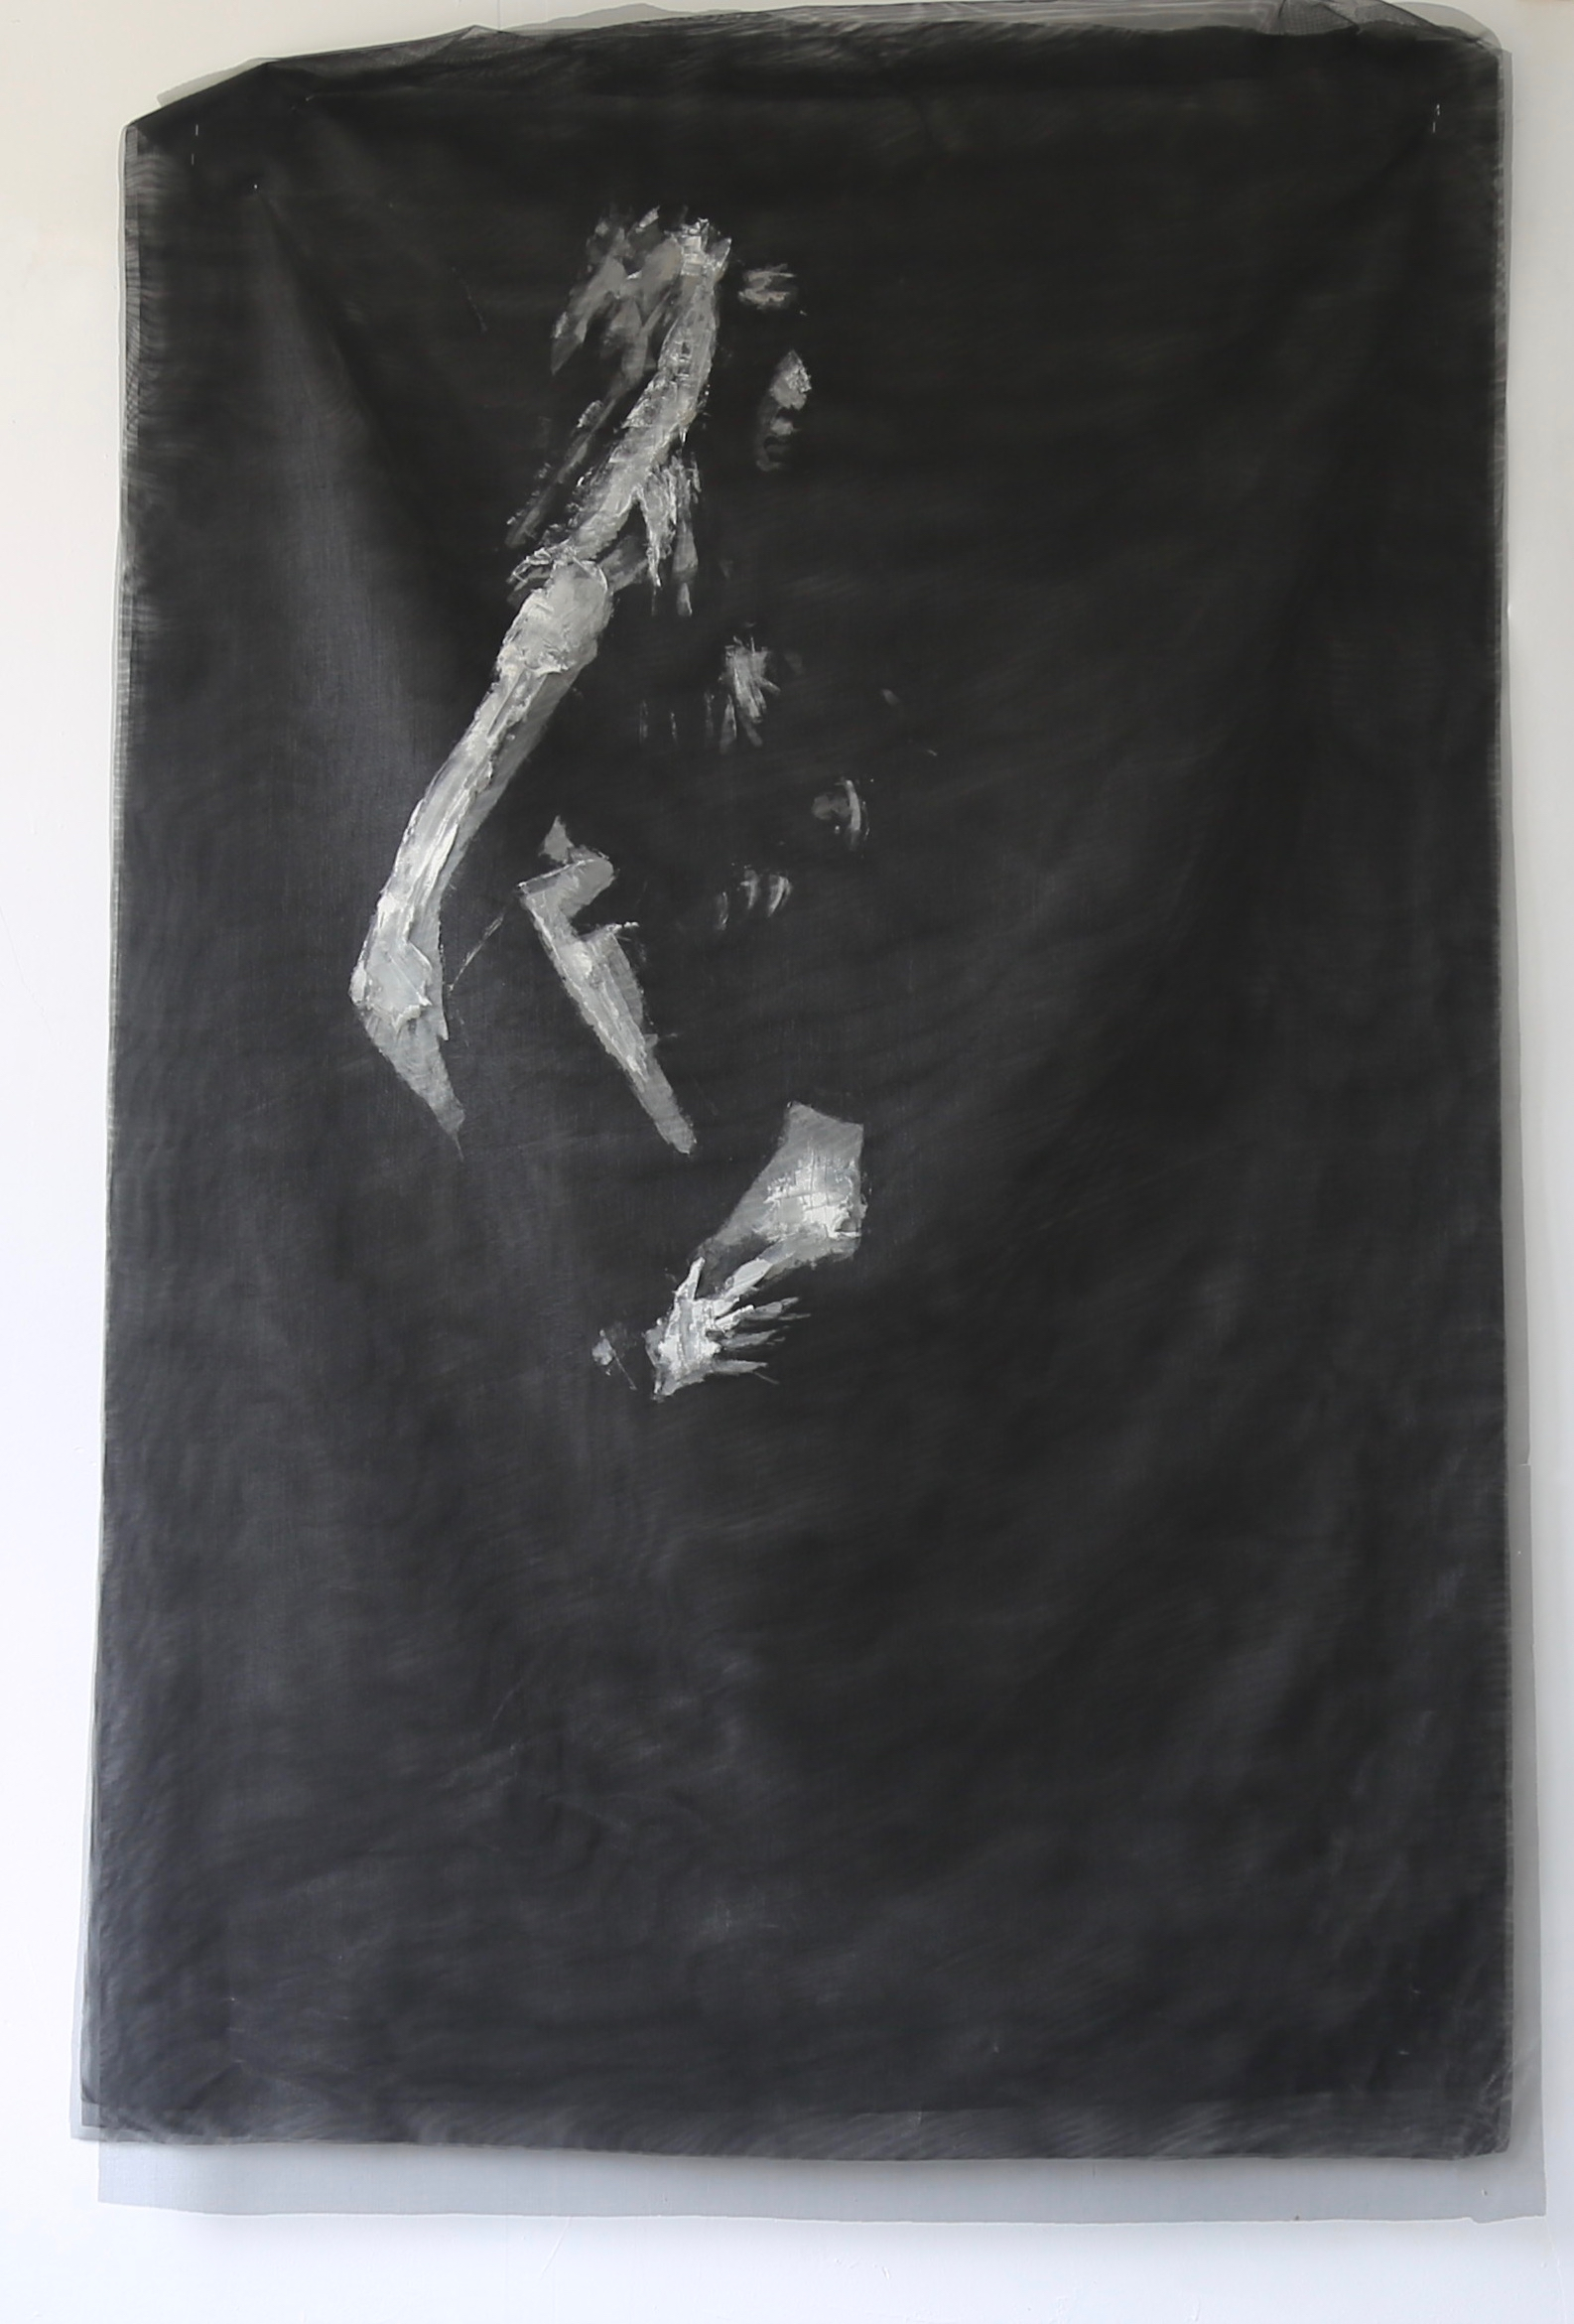 Untitled, (Hands on hips), 2006